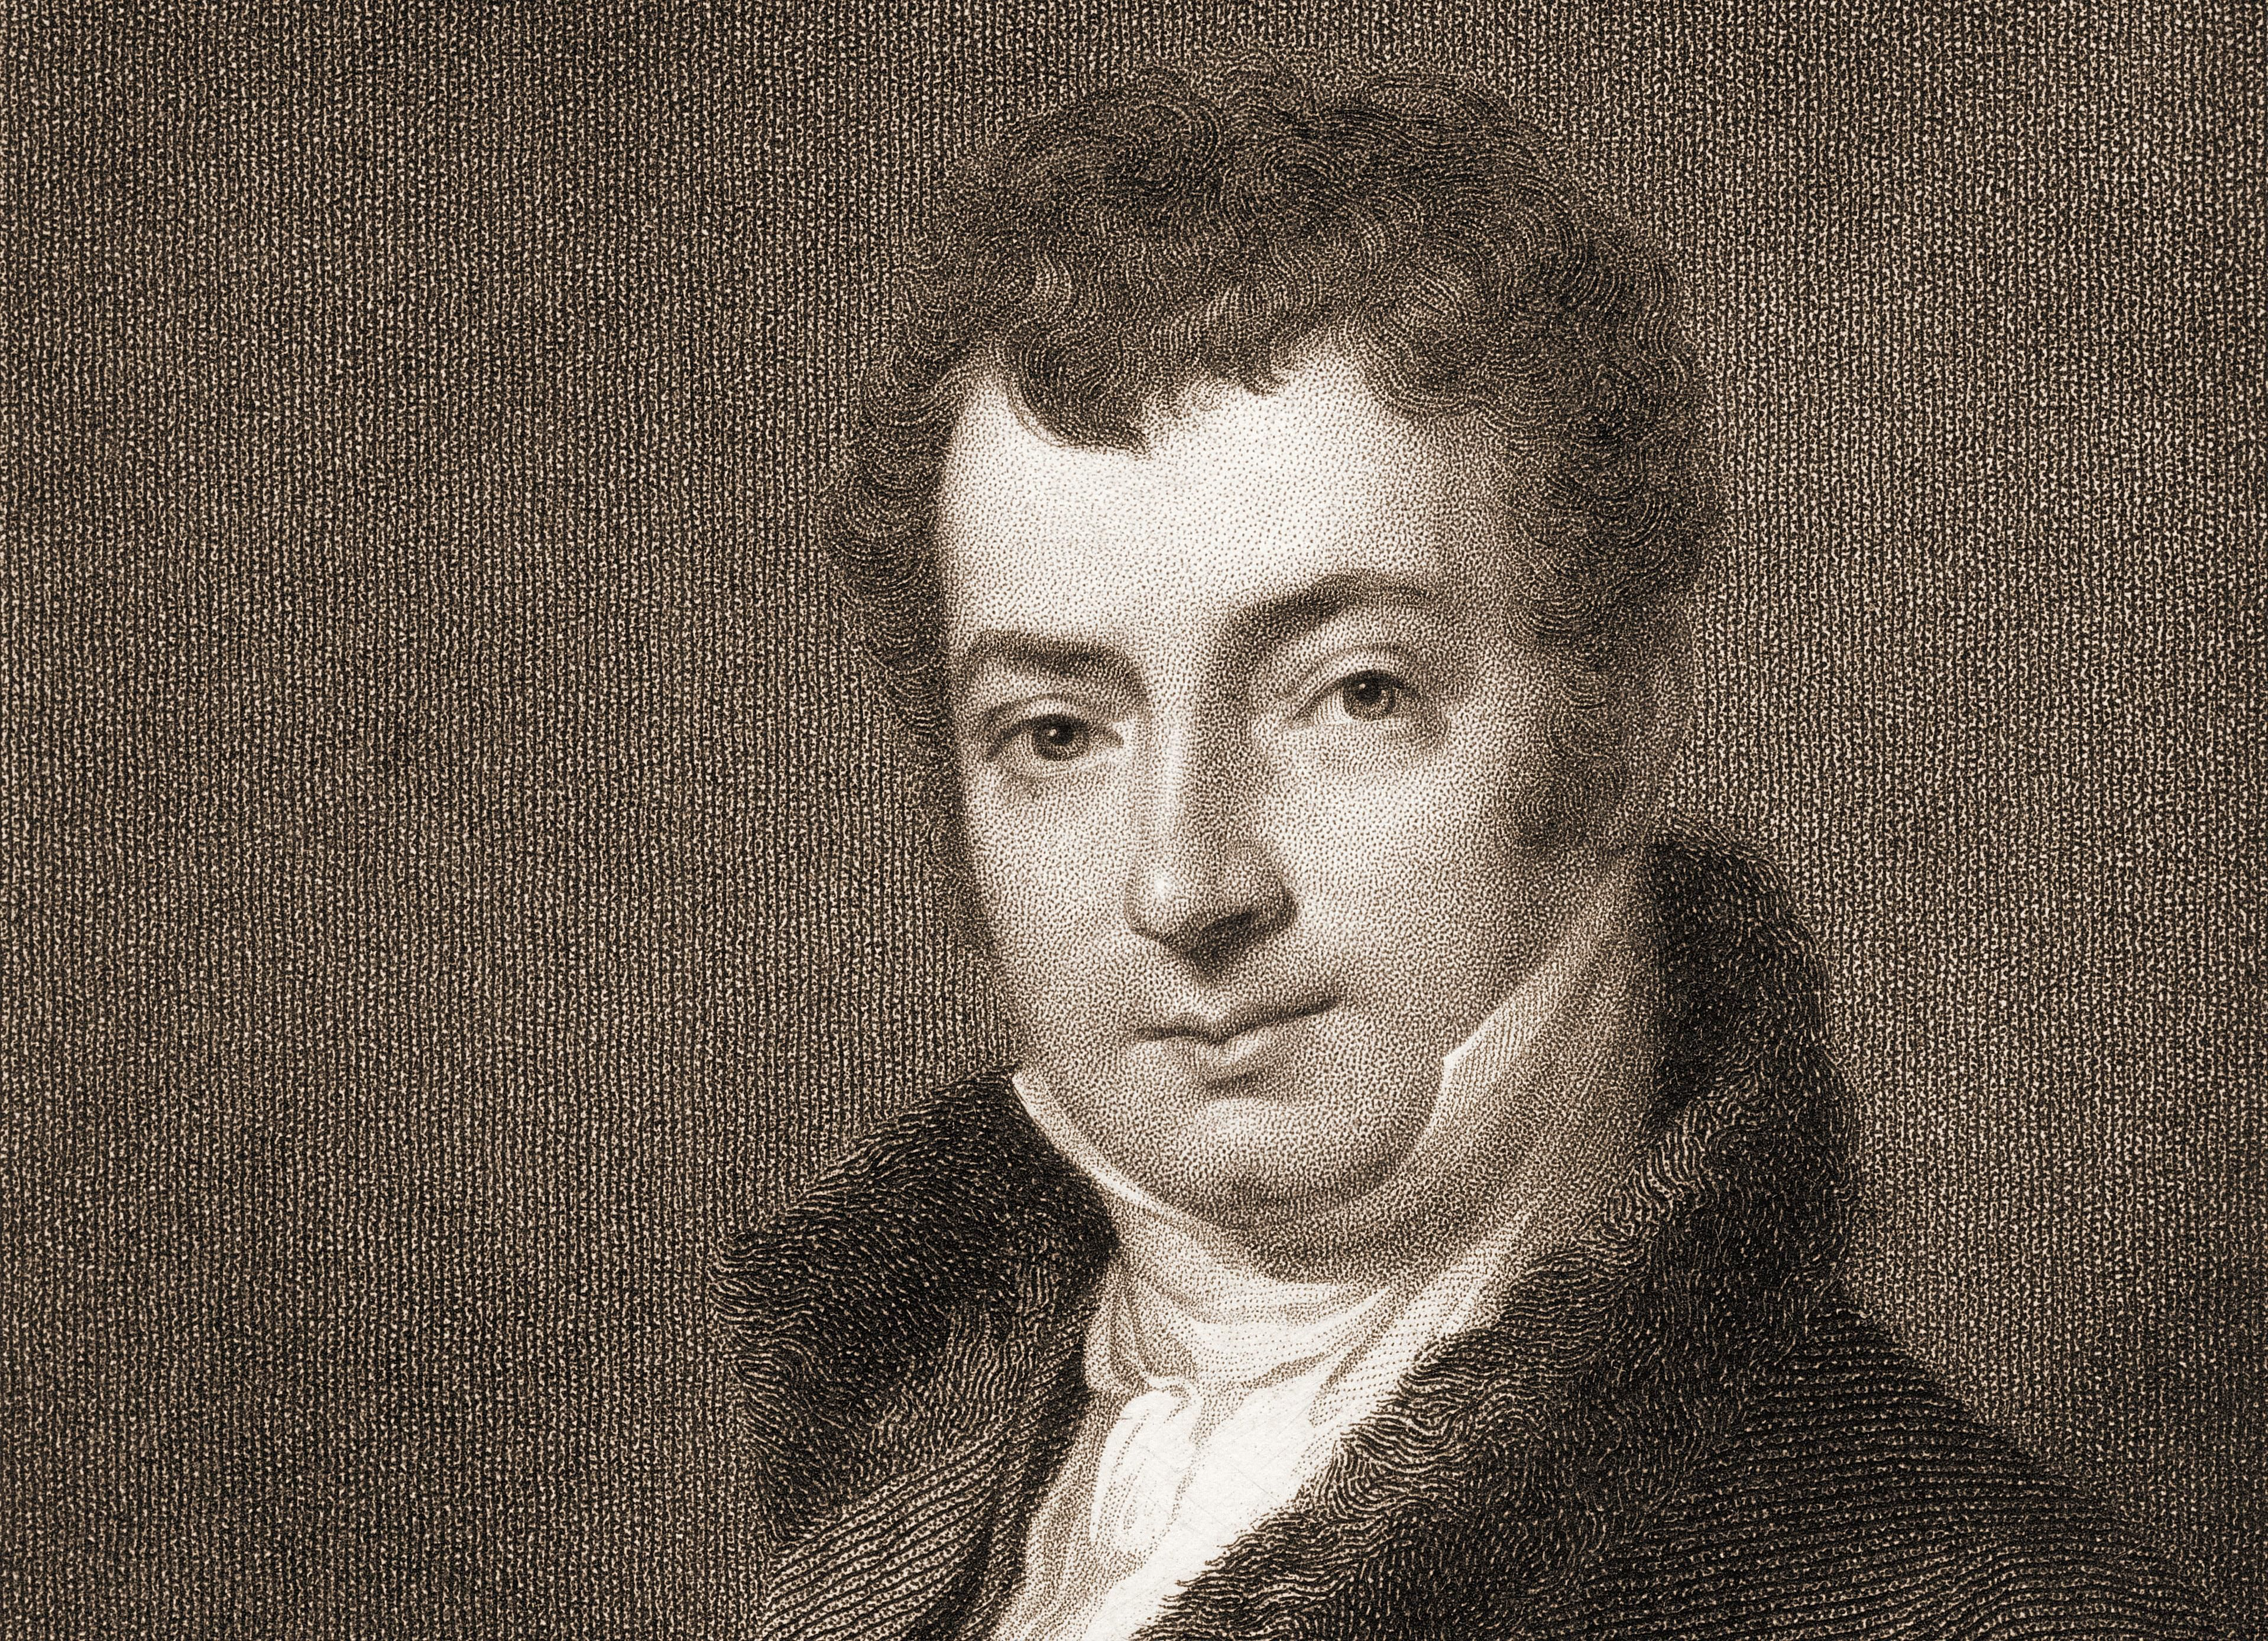 washington irving Washington irving (1783 - 1859) washington irving (april 3, 1783 – november 28, 1859) was an american author, essayist, biographer, historian, and diplomat of.